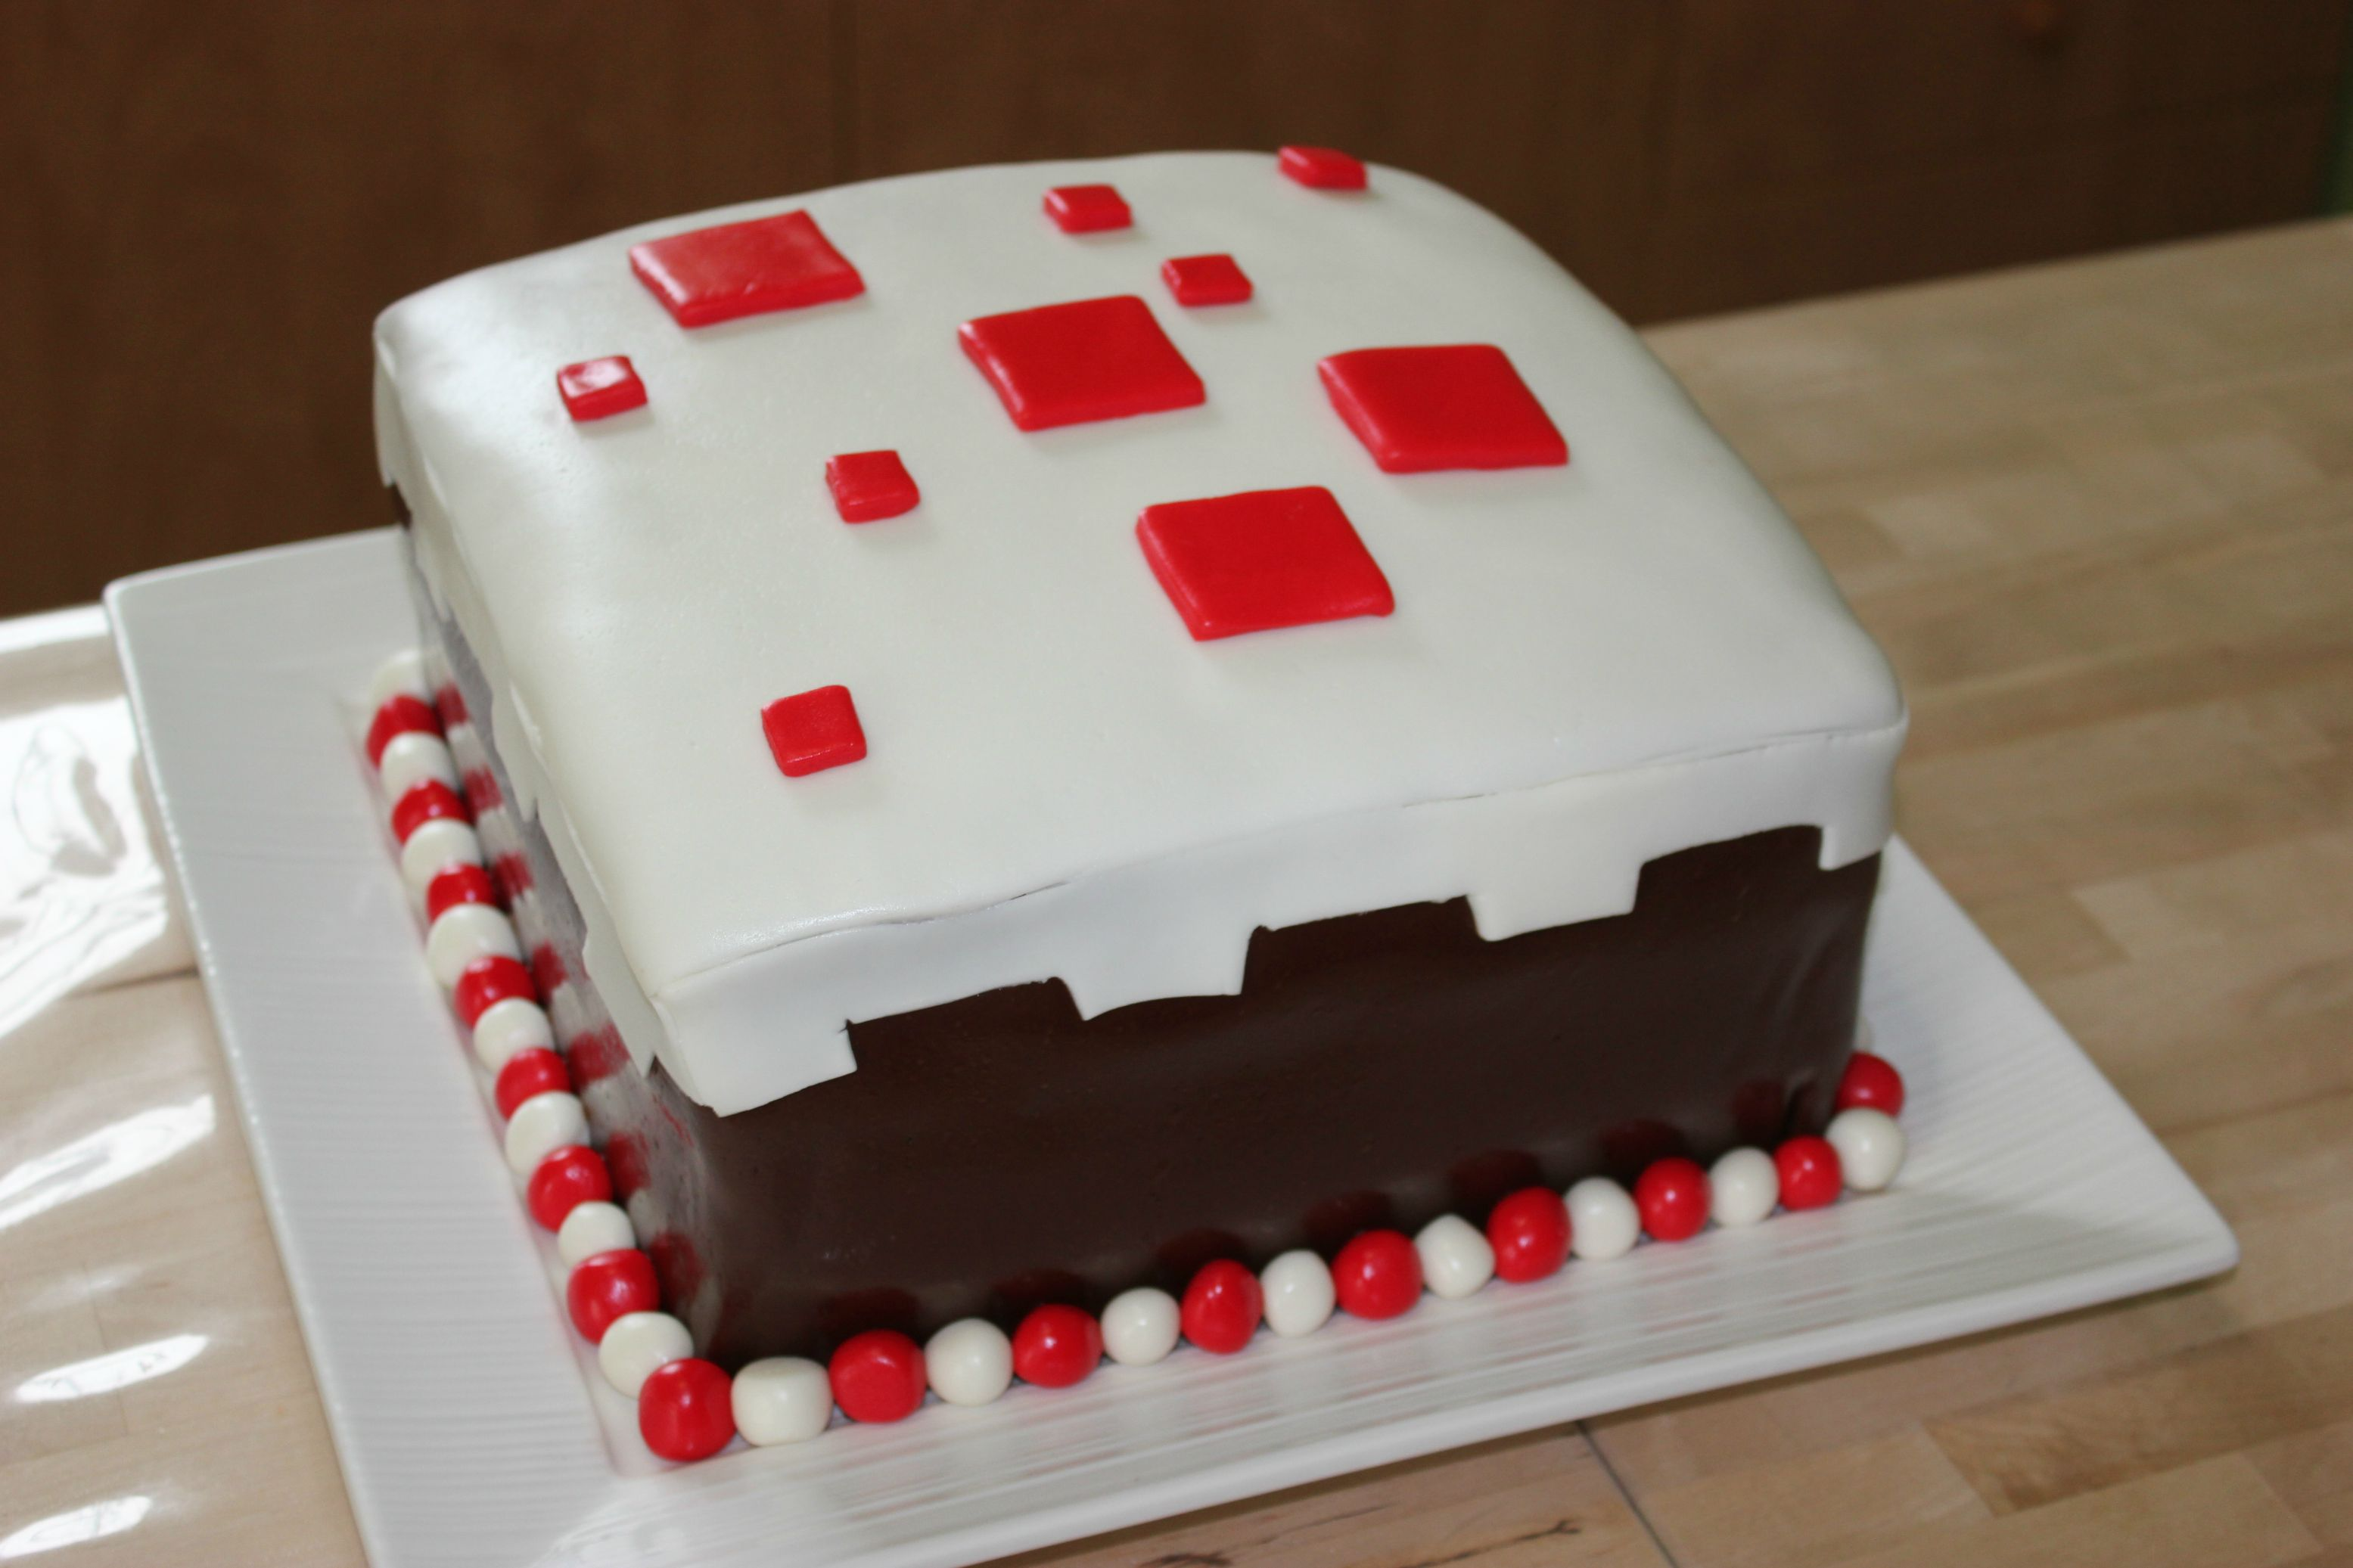 Minecraft Images For Birthday Cake : 5 Awesome Minecraft Cakes Gearcraft